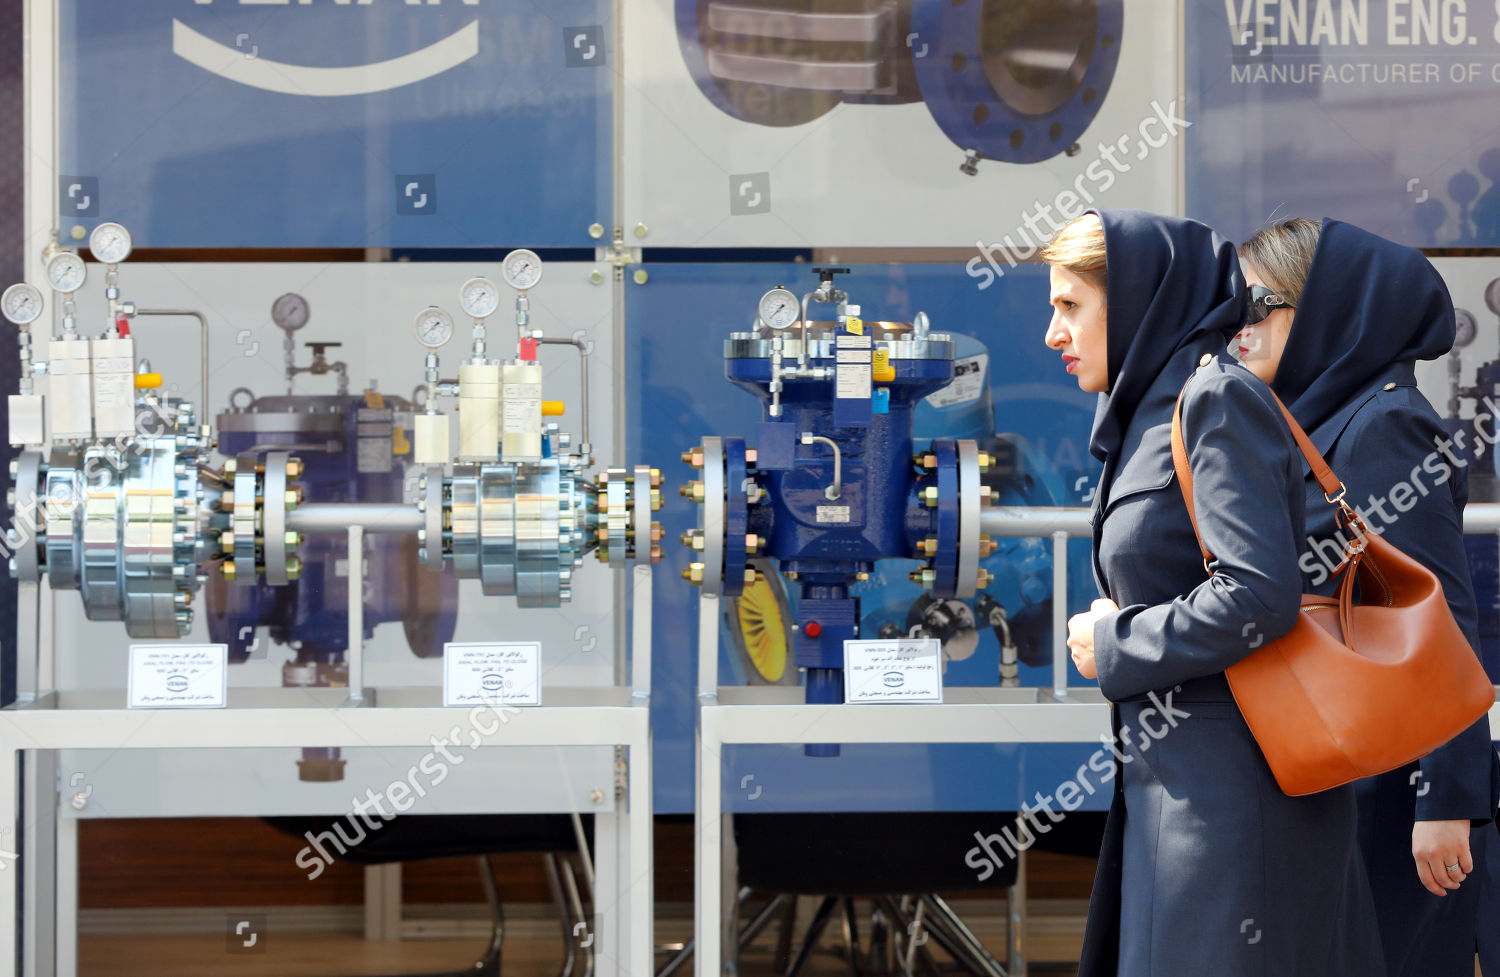 Visitors employees attend Iran Oil Gas Petrochemical